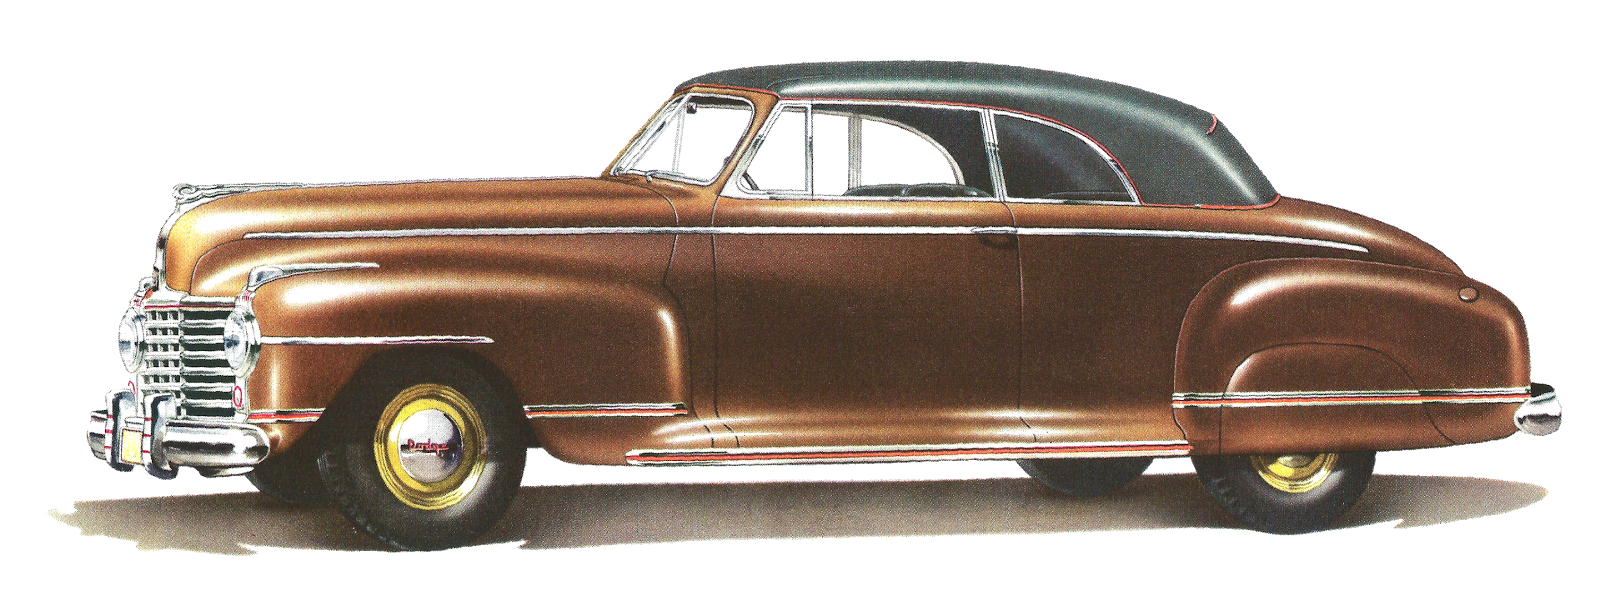 Oh, this is a gorgeous vintage car! This is digital clip art of a.